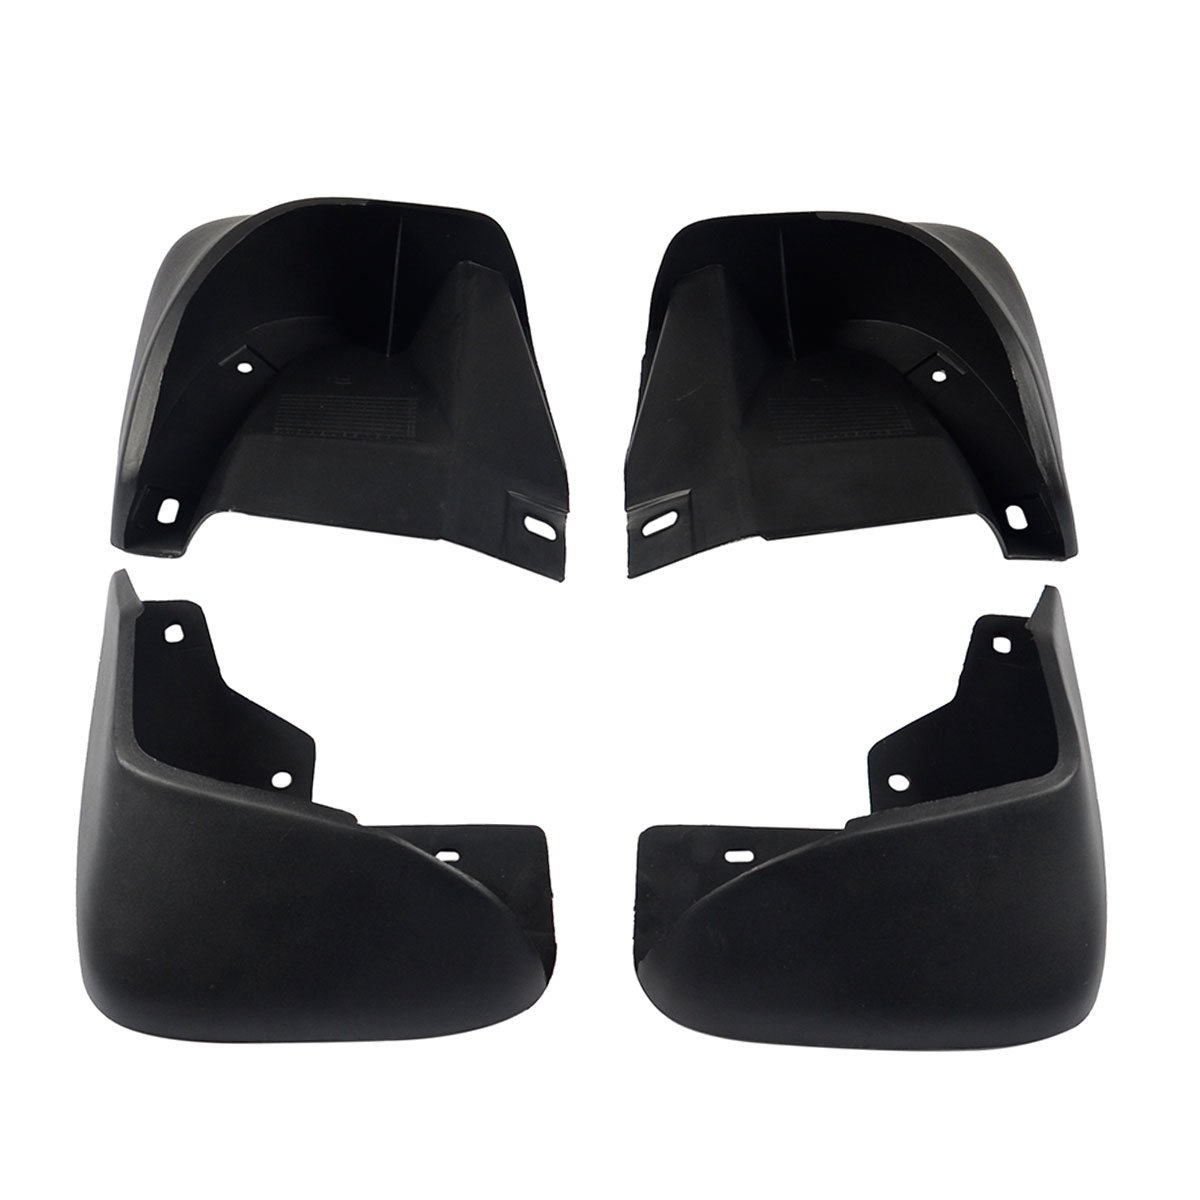 A-Premium Splash Guard Mud Flaps Mudflaps for Honda Accord 1998-2002 Front and Rear 4-PC Set